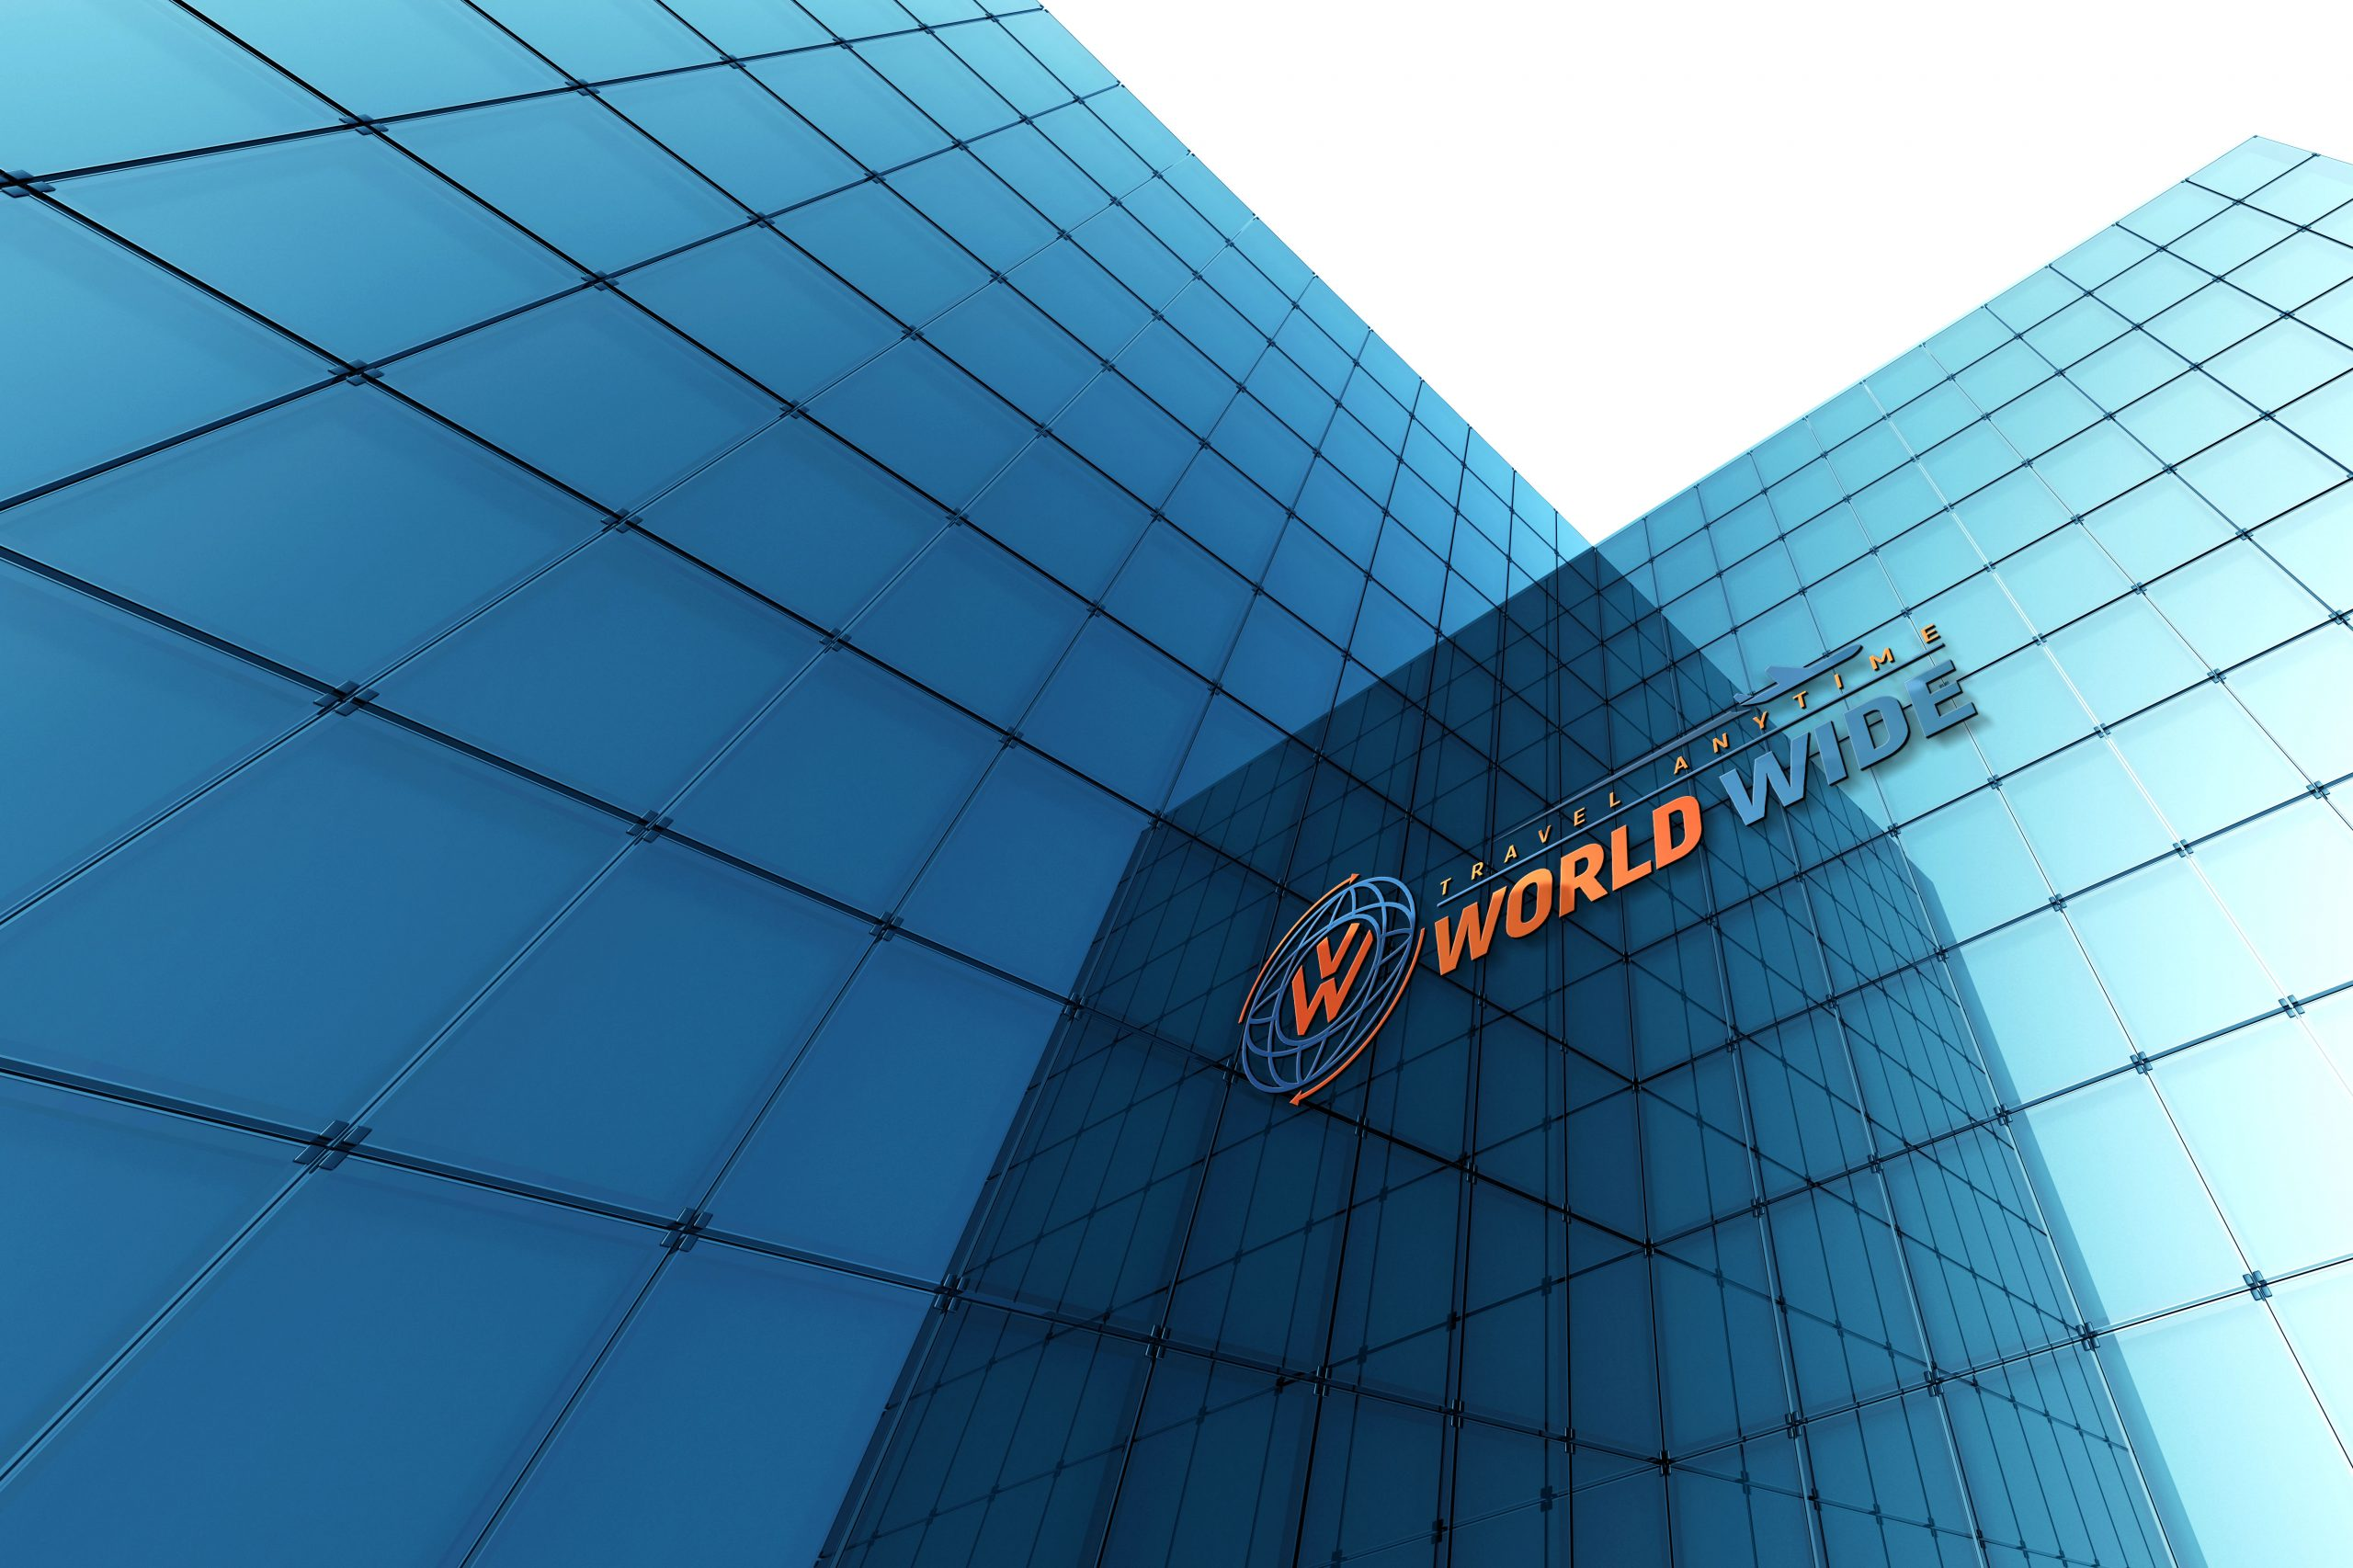 World Wide Travel Company Logo Design by GraphicsFamily